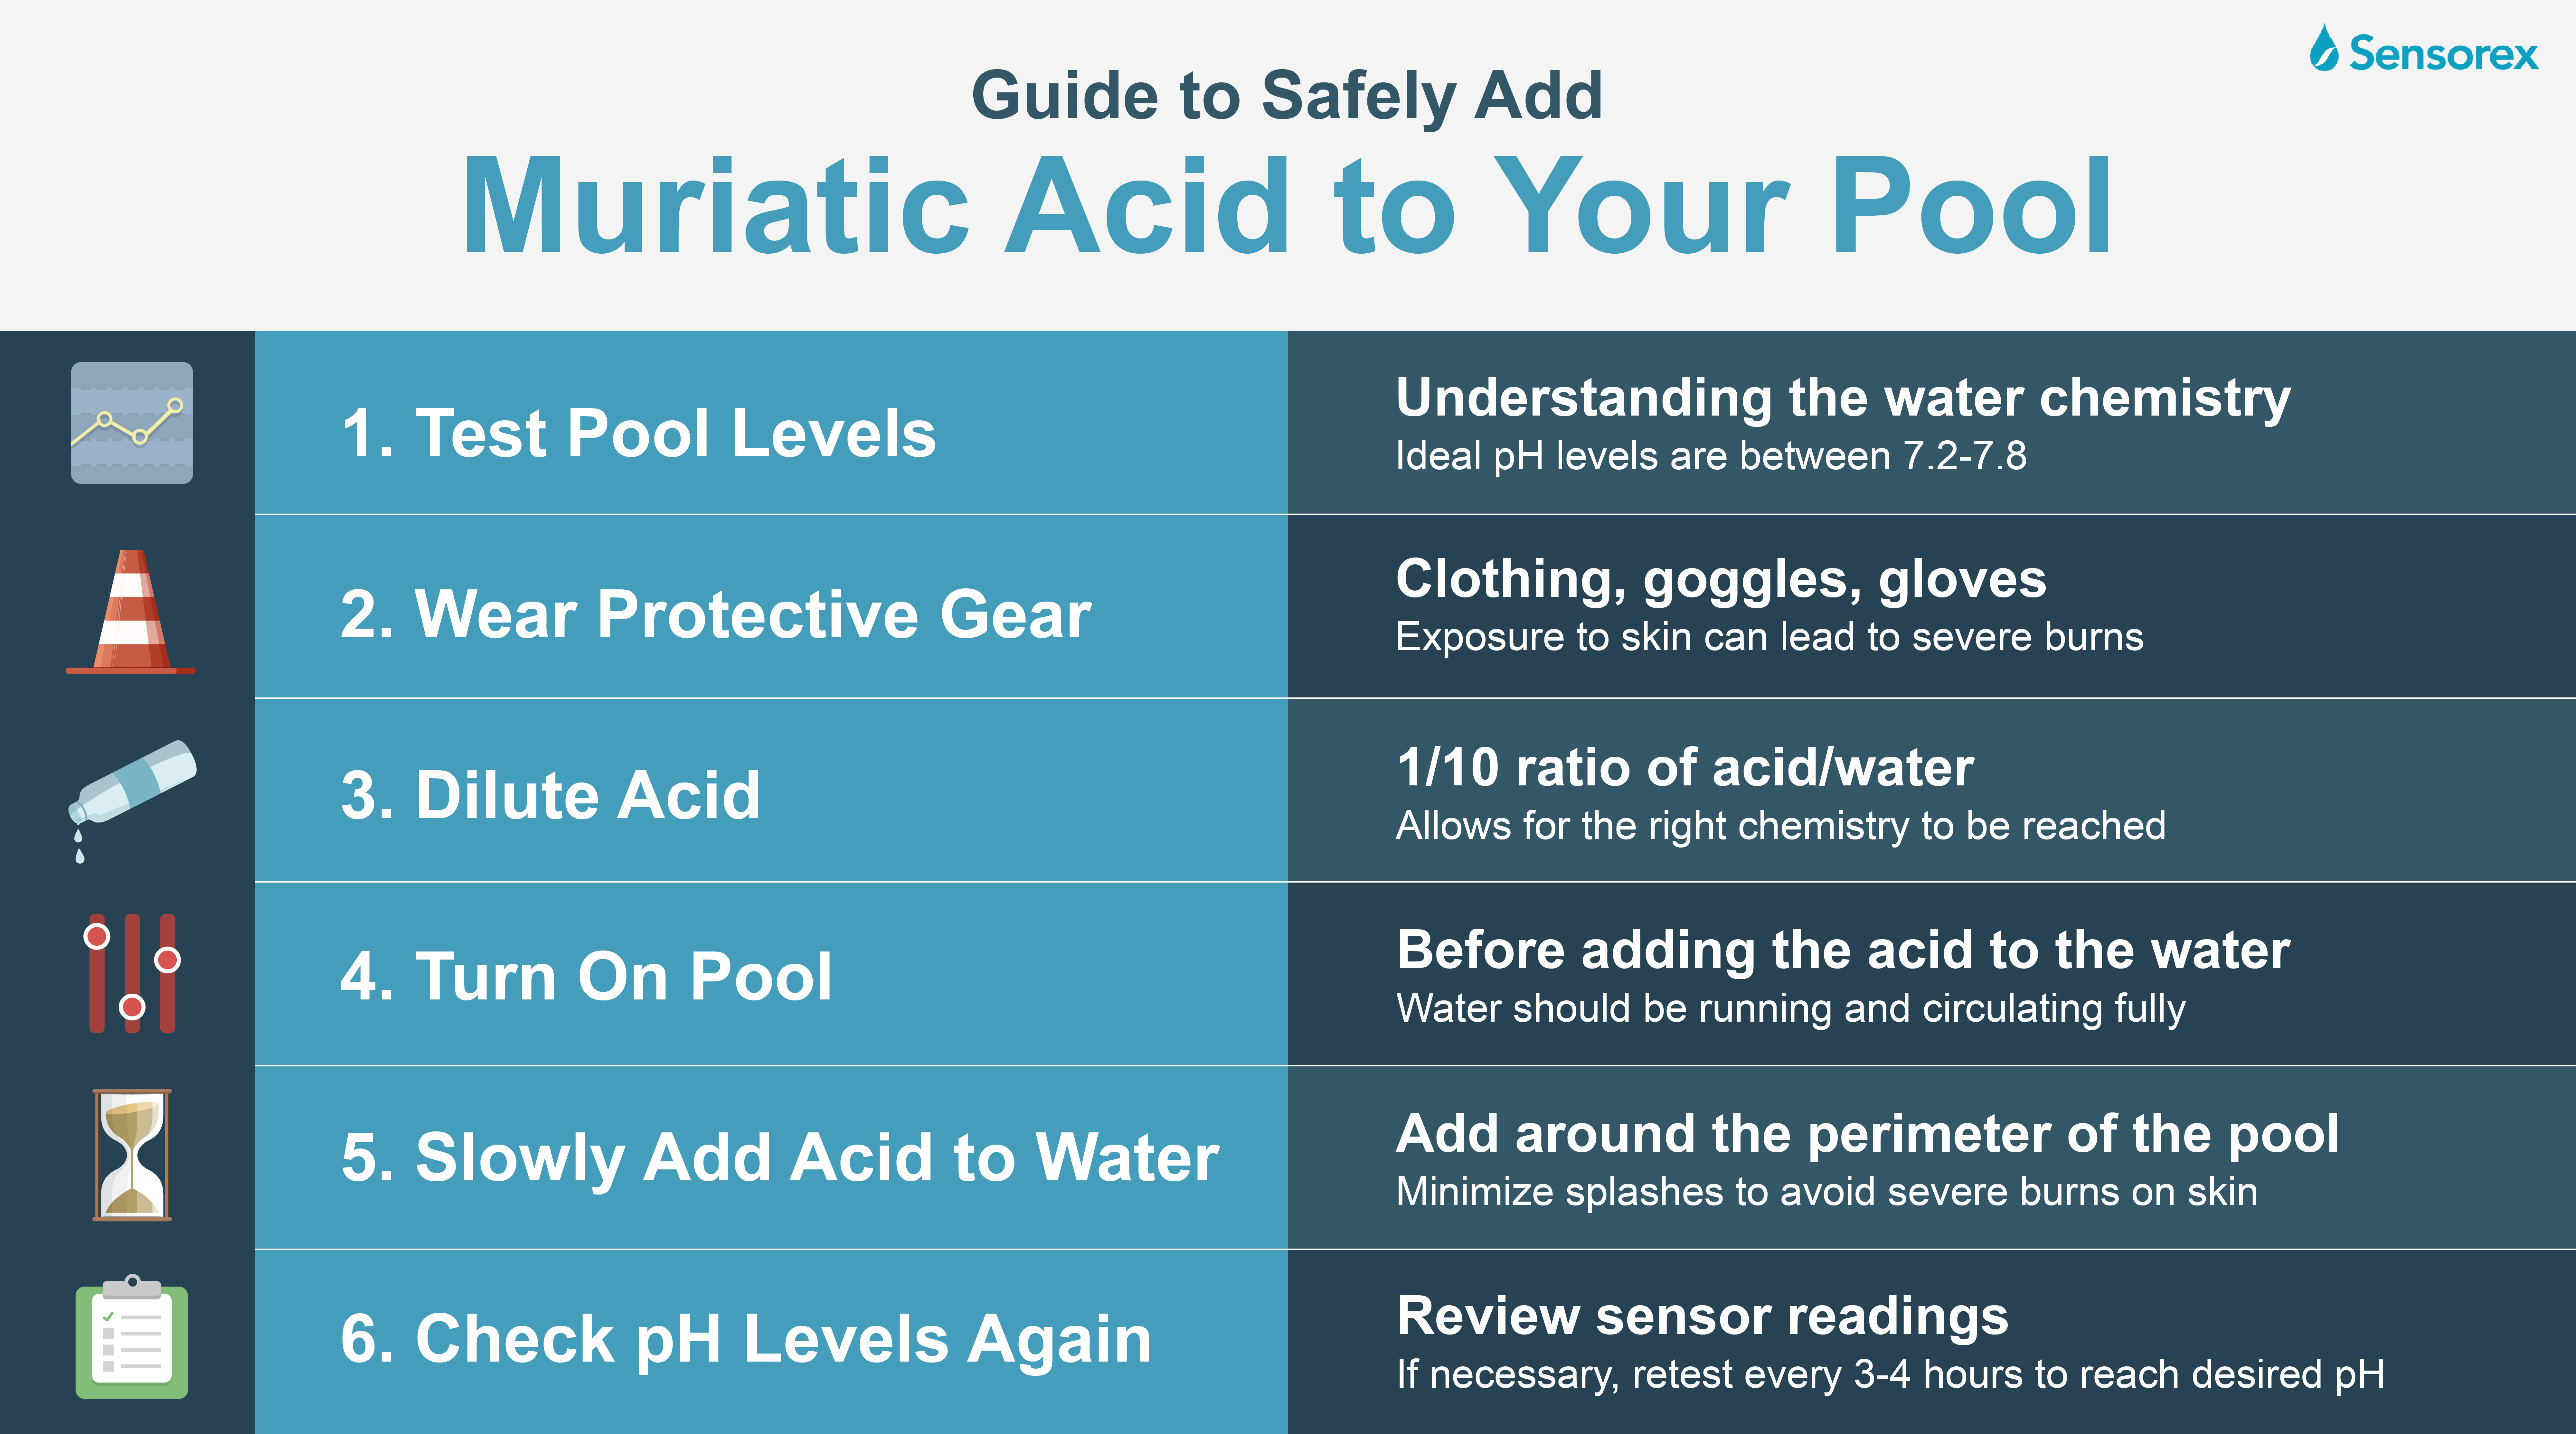 Guide to Safely Add Muriatic Acid to Your Pool Infographic